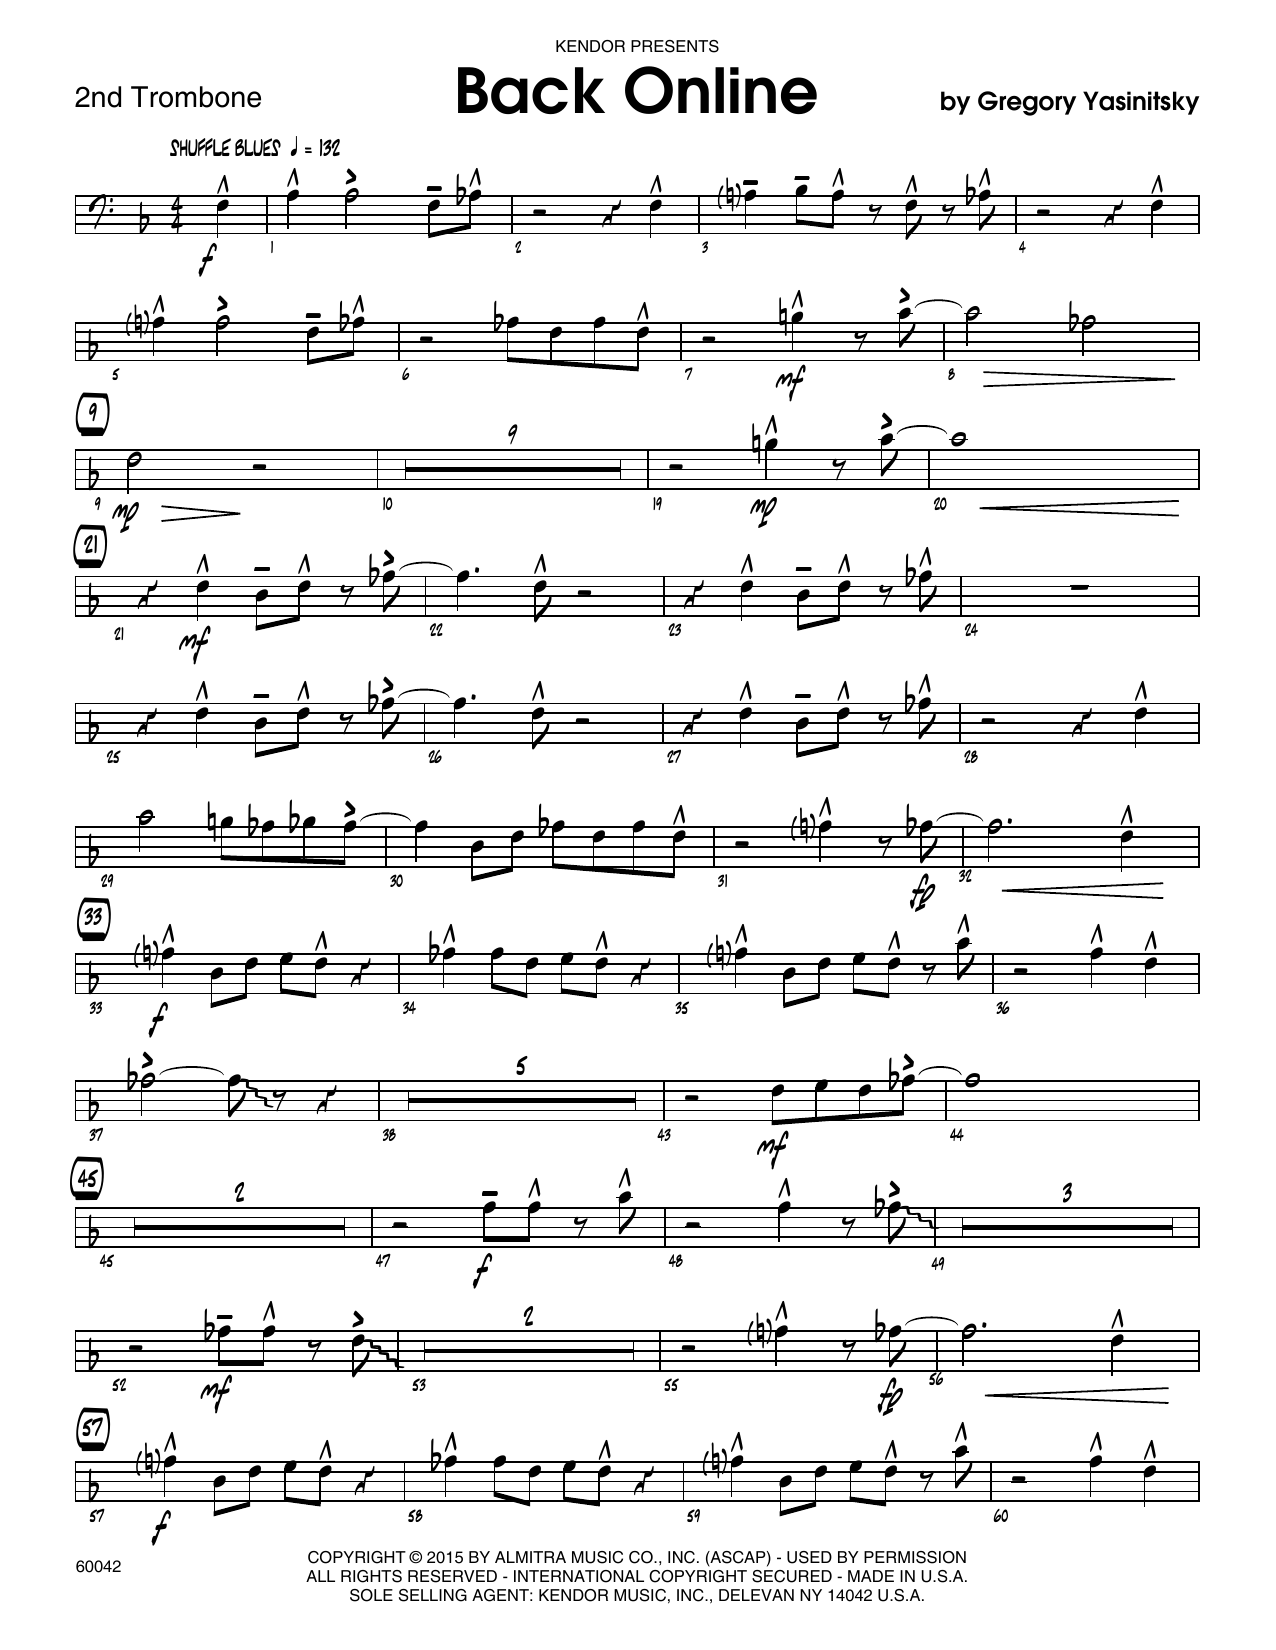 Back Online - 2nd Trombone Sheet Music